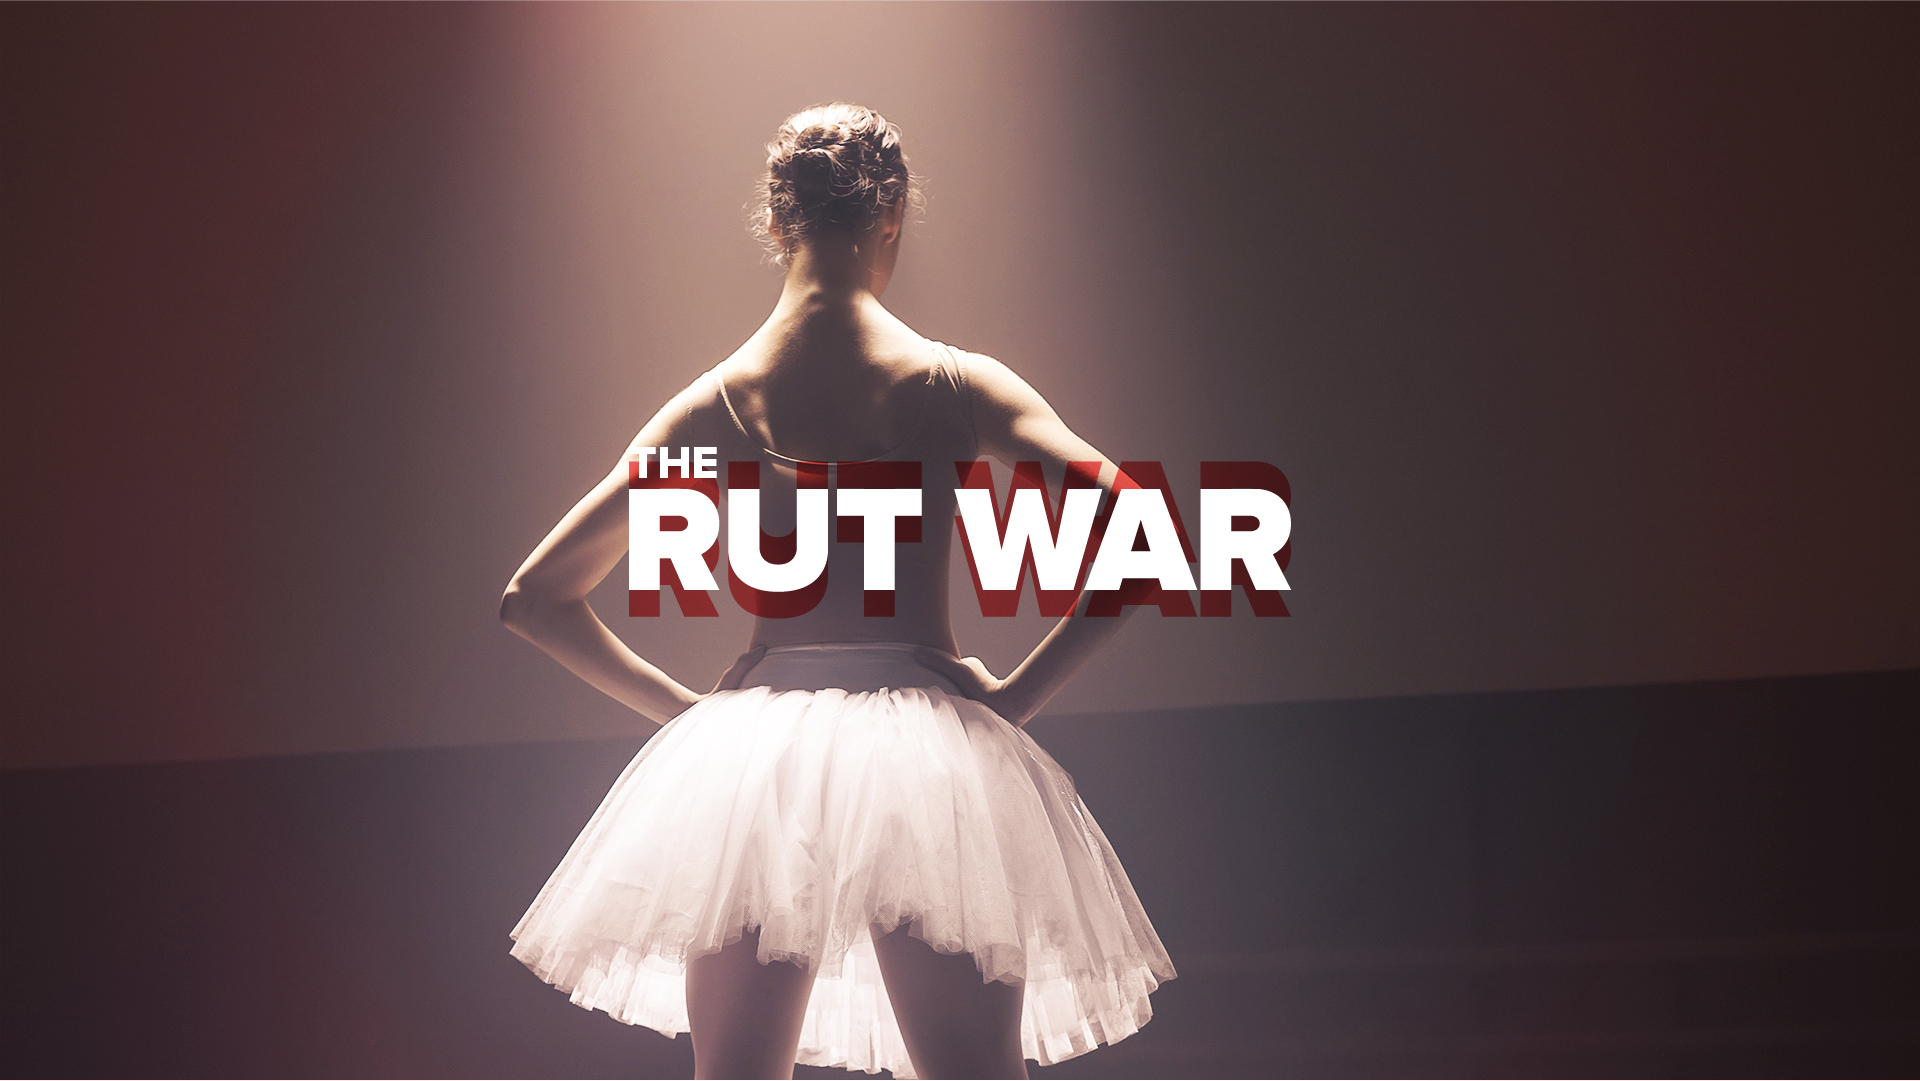 The Rut War